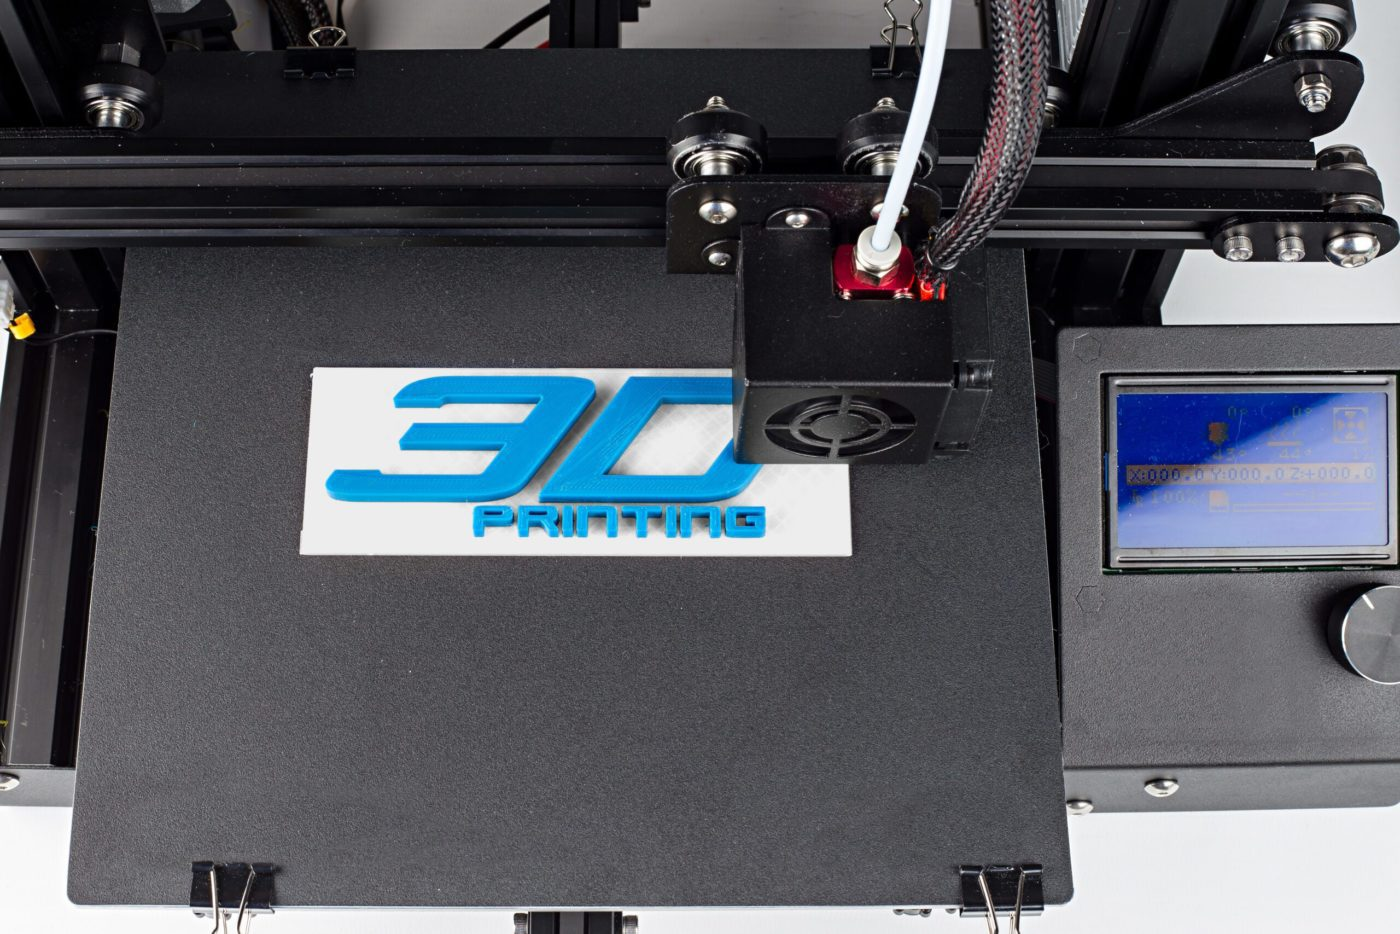 3d print of printer printing logo symbol lettering with white blue pla filament modern future technology concept background